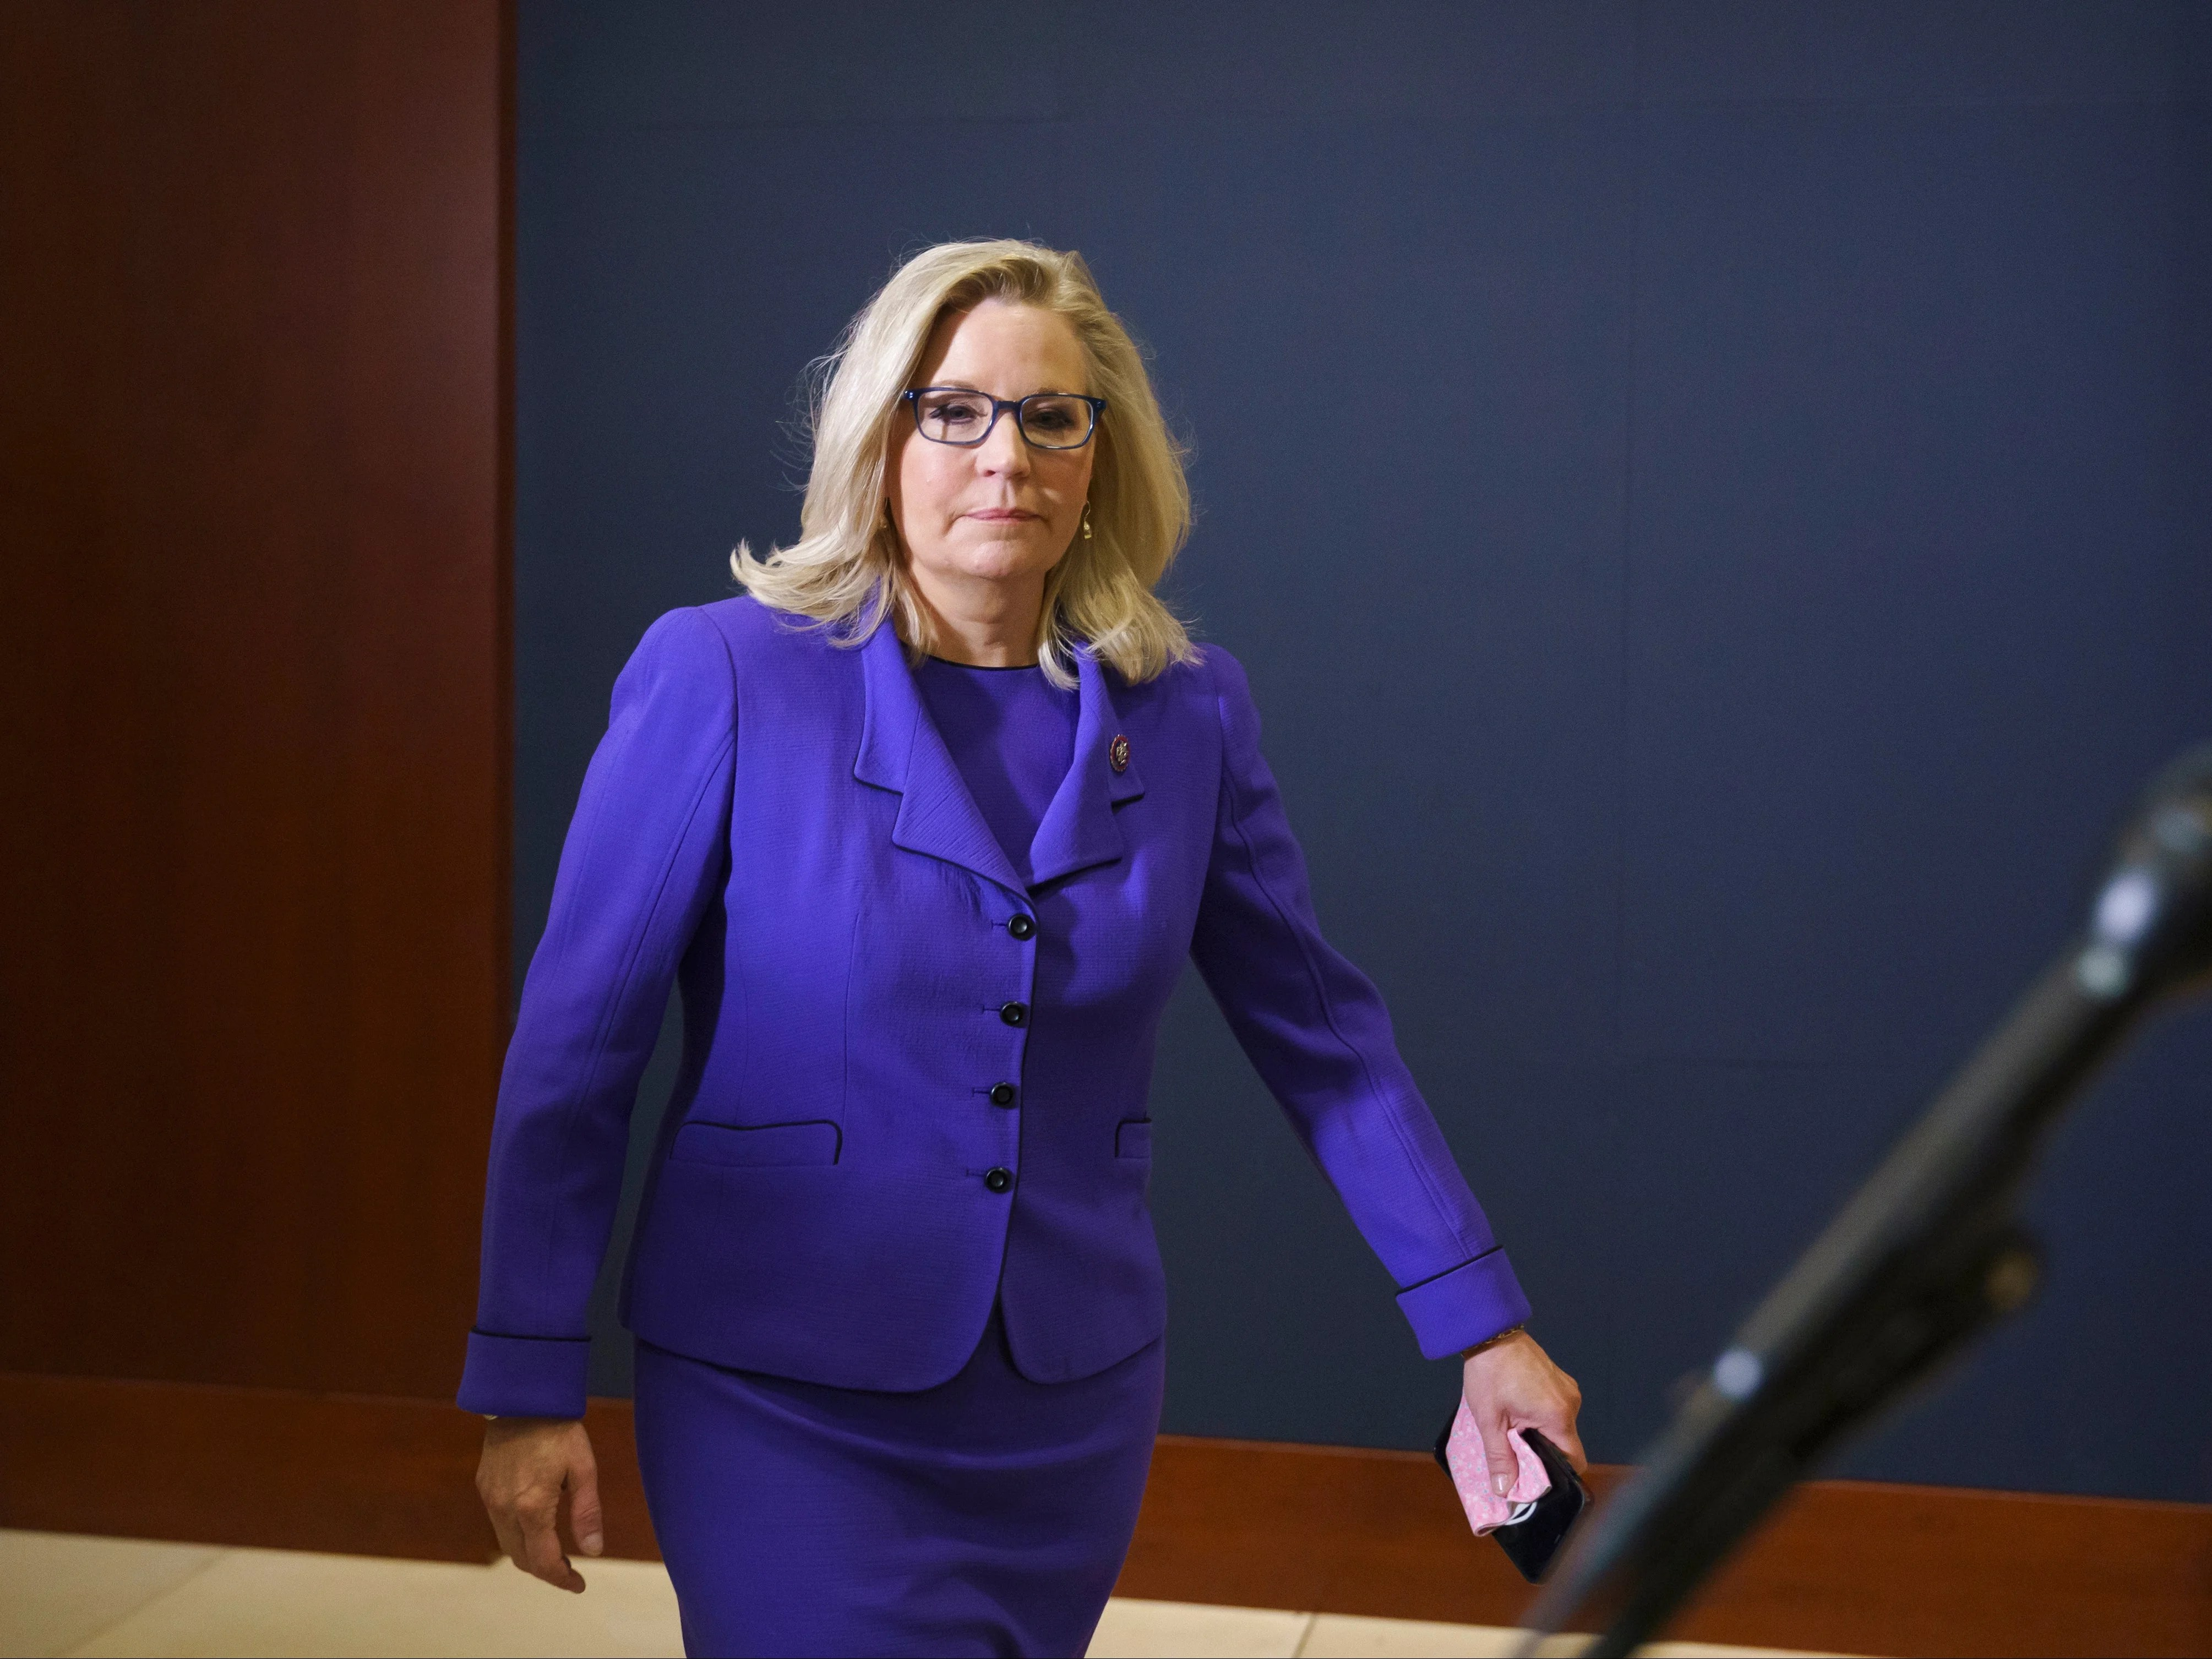 Liz Cheney says more lawmakers would have voted to impeach Trump but 'feared for their lives'